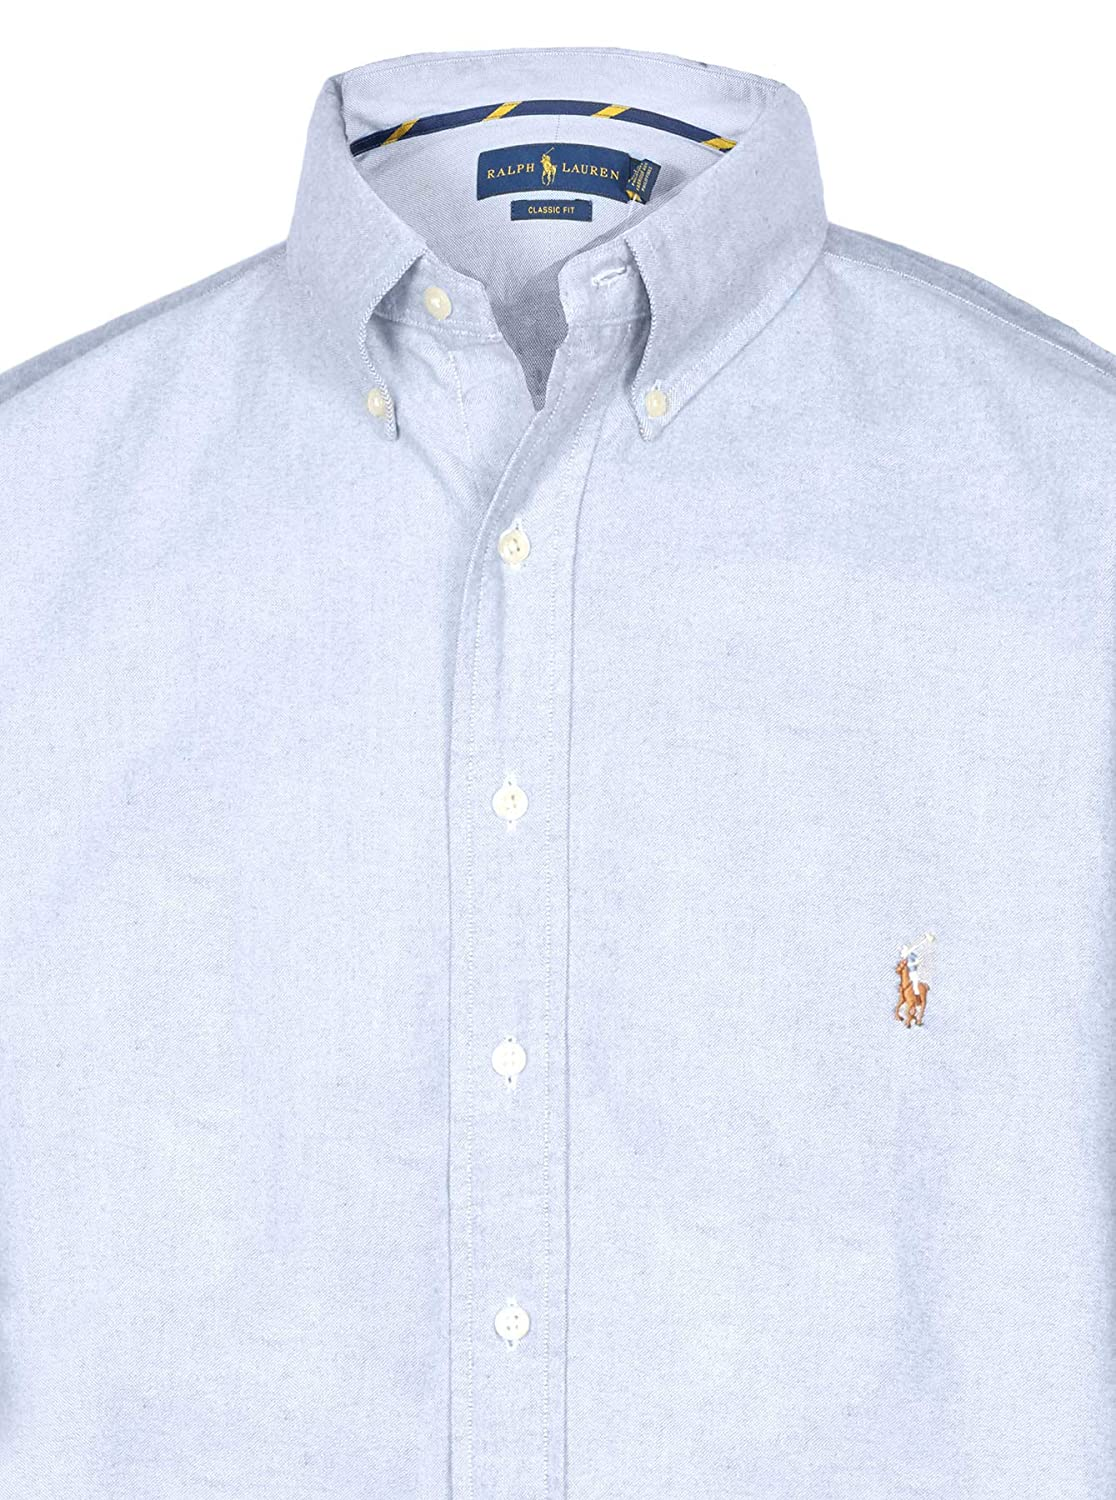 dfdc44b3d93 Amazon.com: RALPH LAUREN Polo Men's Big & Tall Classic Fit Short Sleeve  Solid Oxford Sport Shirt: Clothing